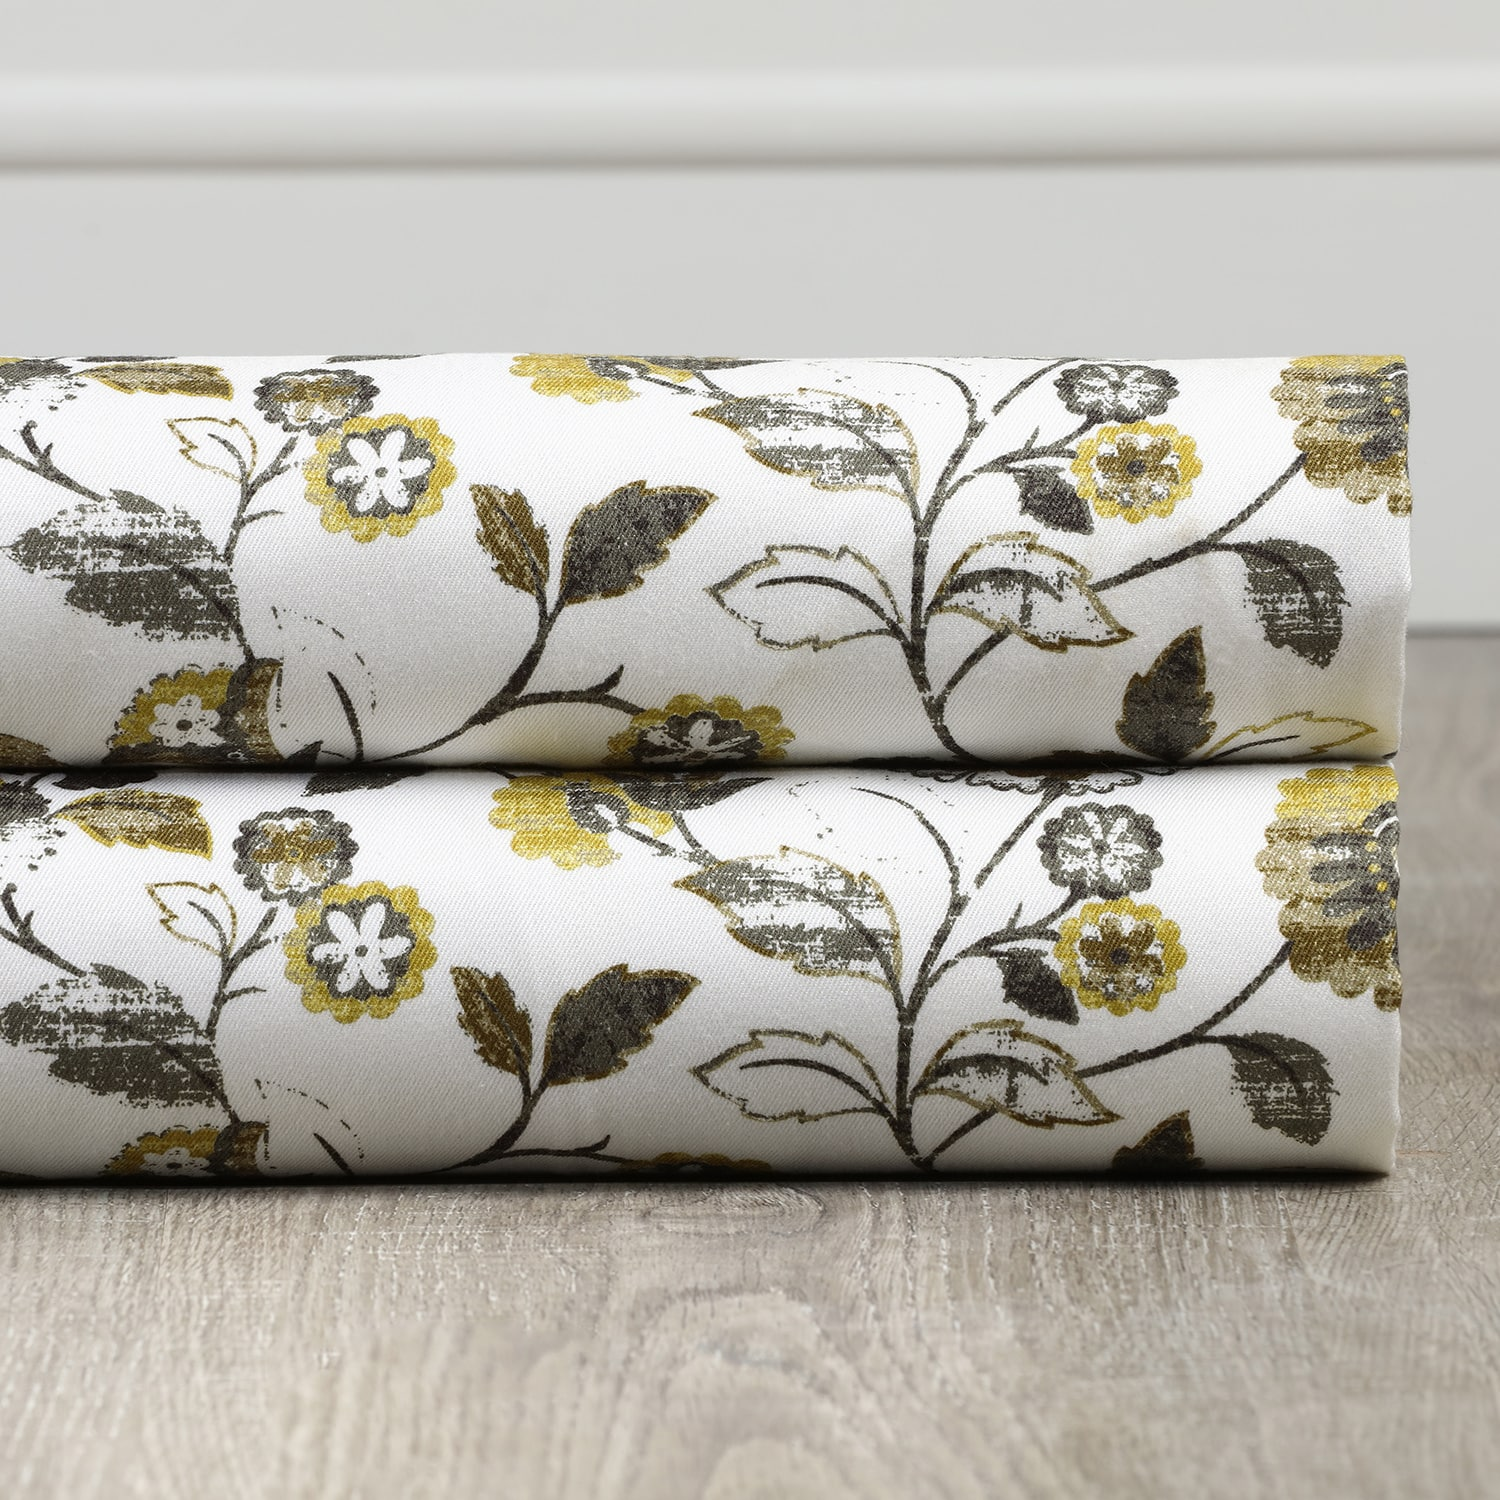 Madison Gold and Grey Digital Printed Cotton Twill Swatch